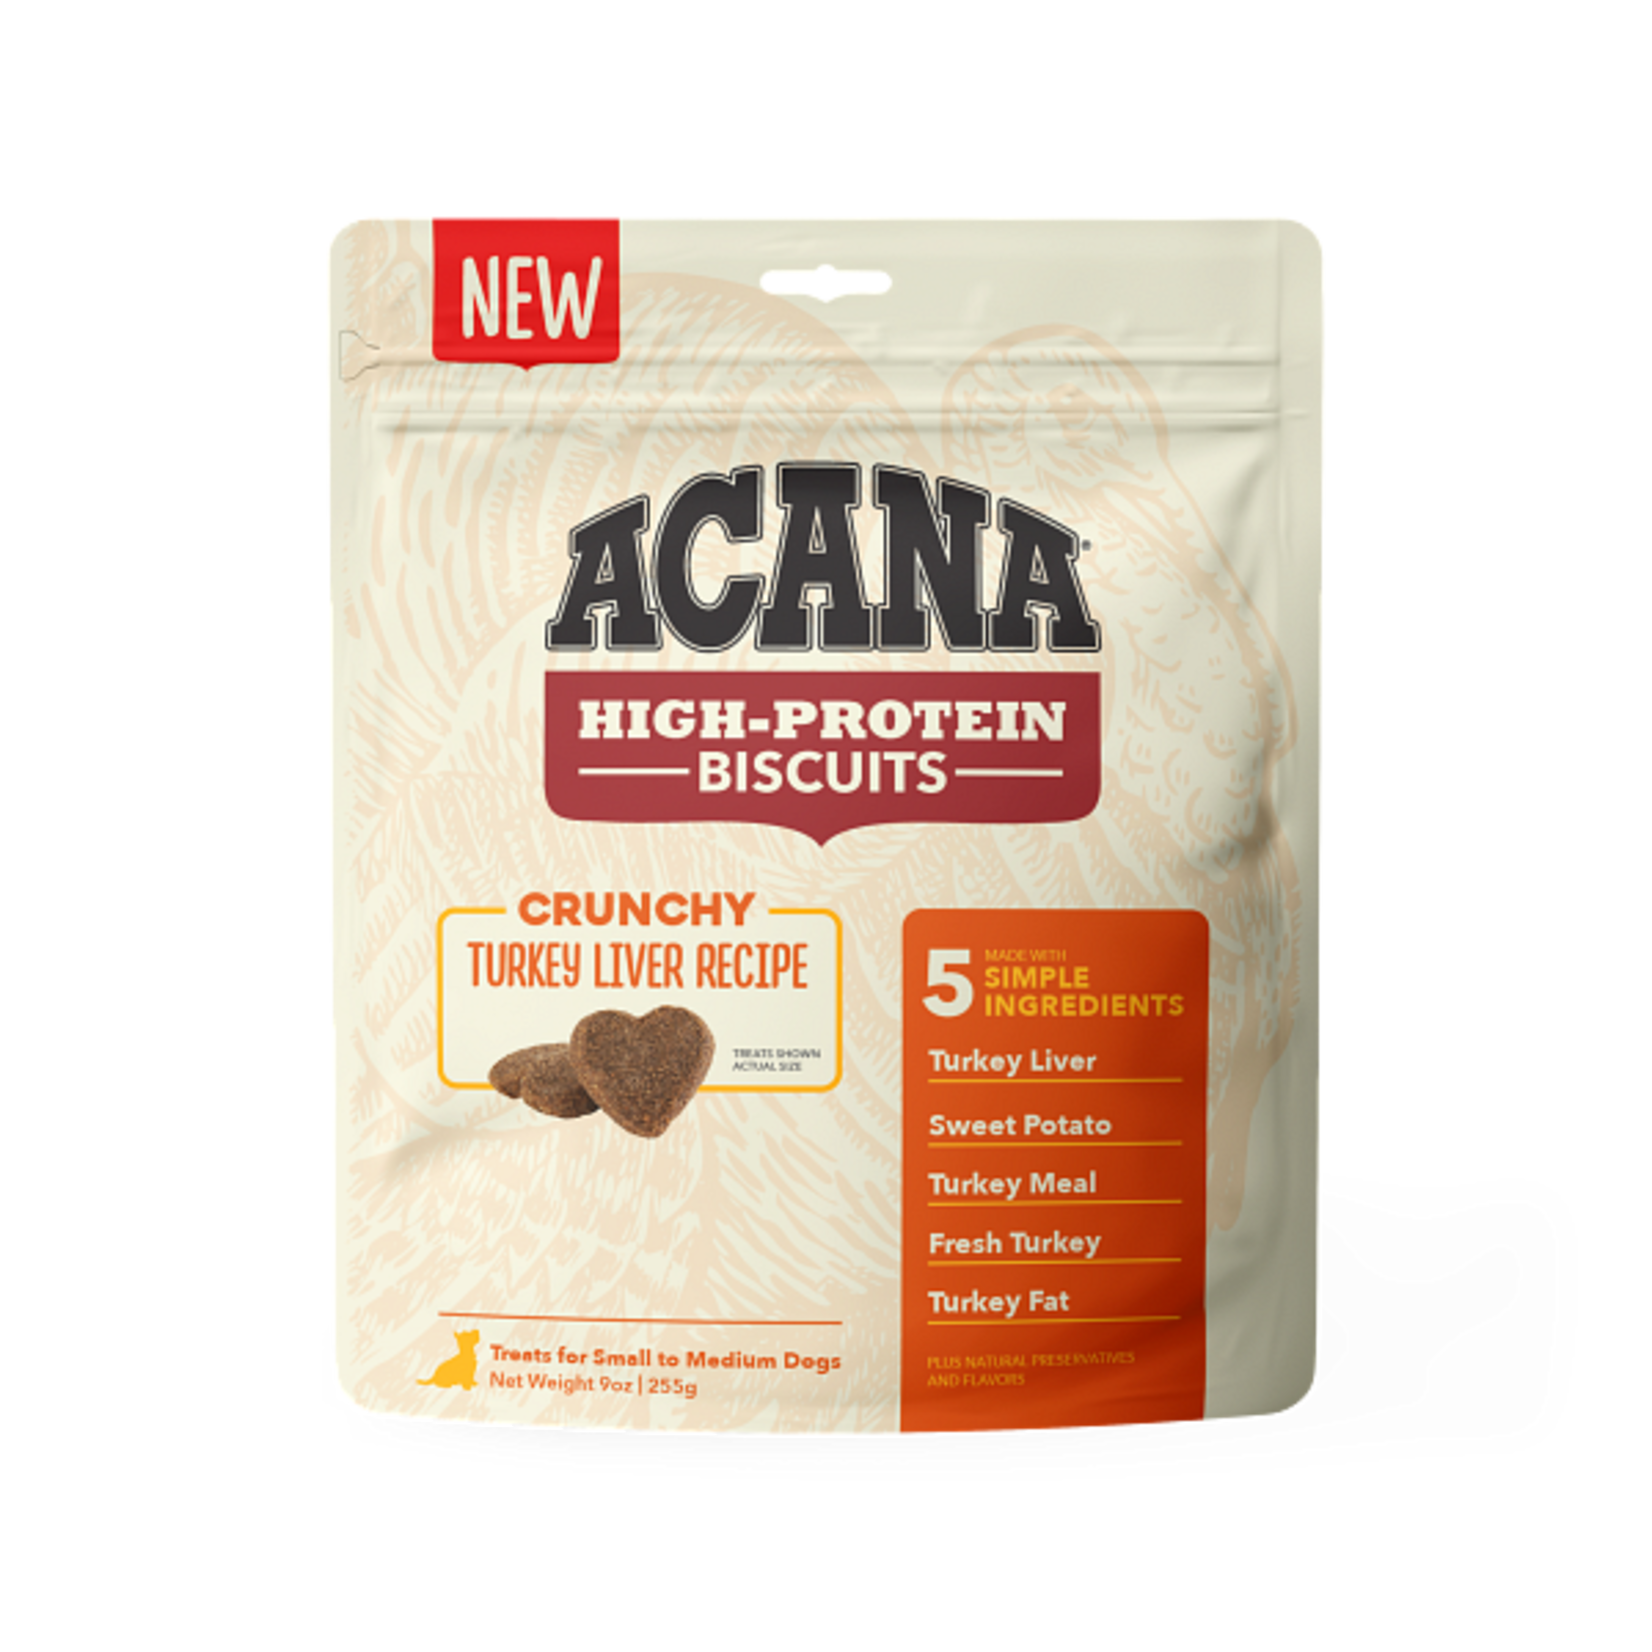 Champion Pet Foods Acana High-Protein Biscuits Turkey Liver Small 9 OZ